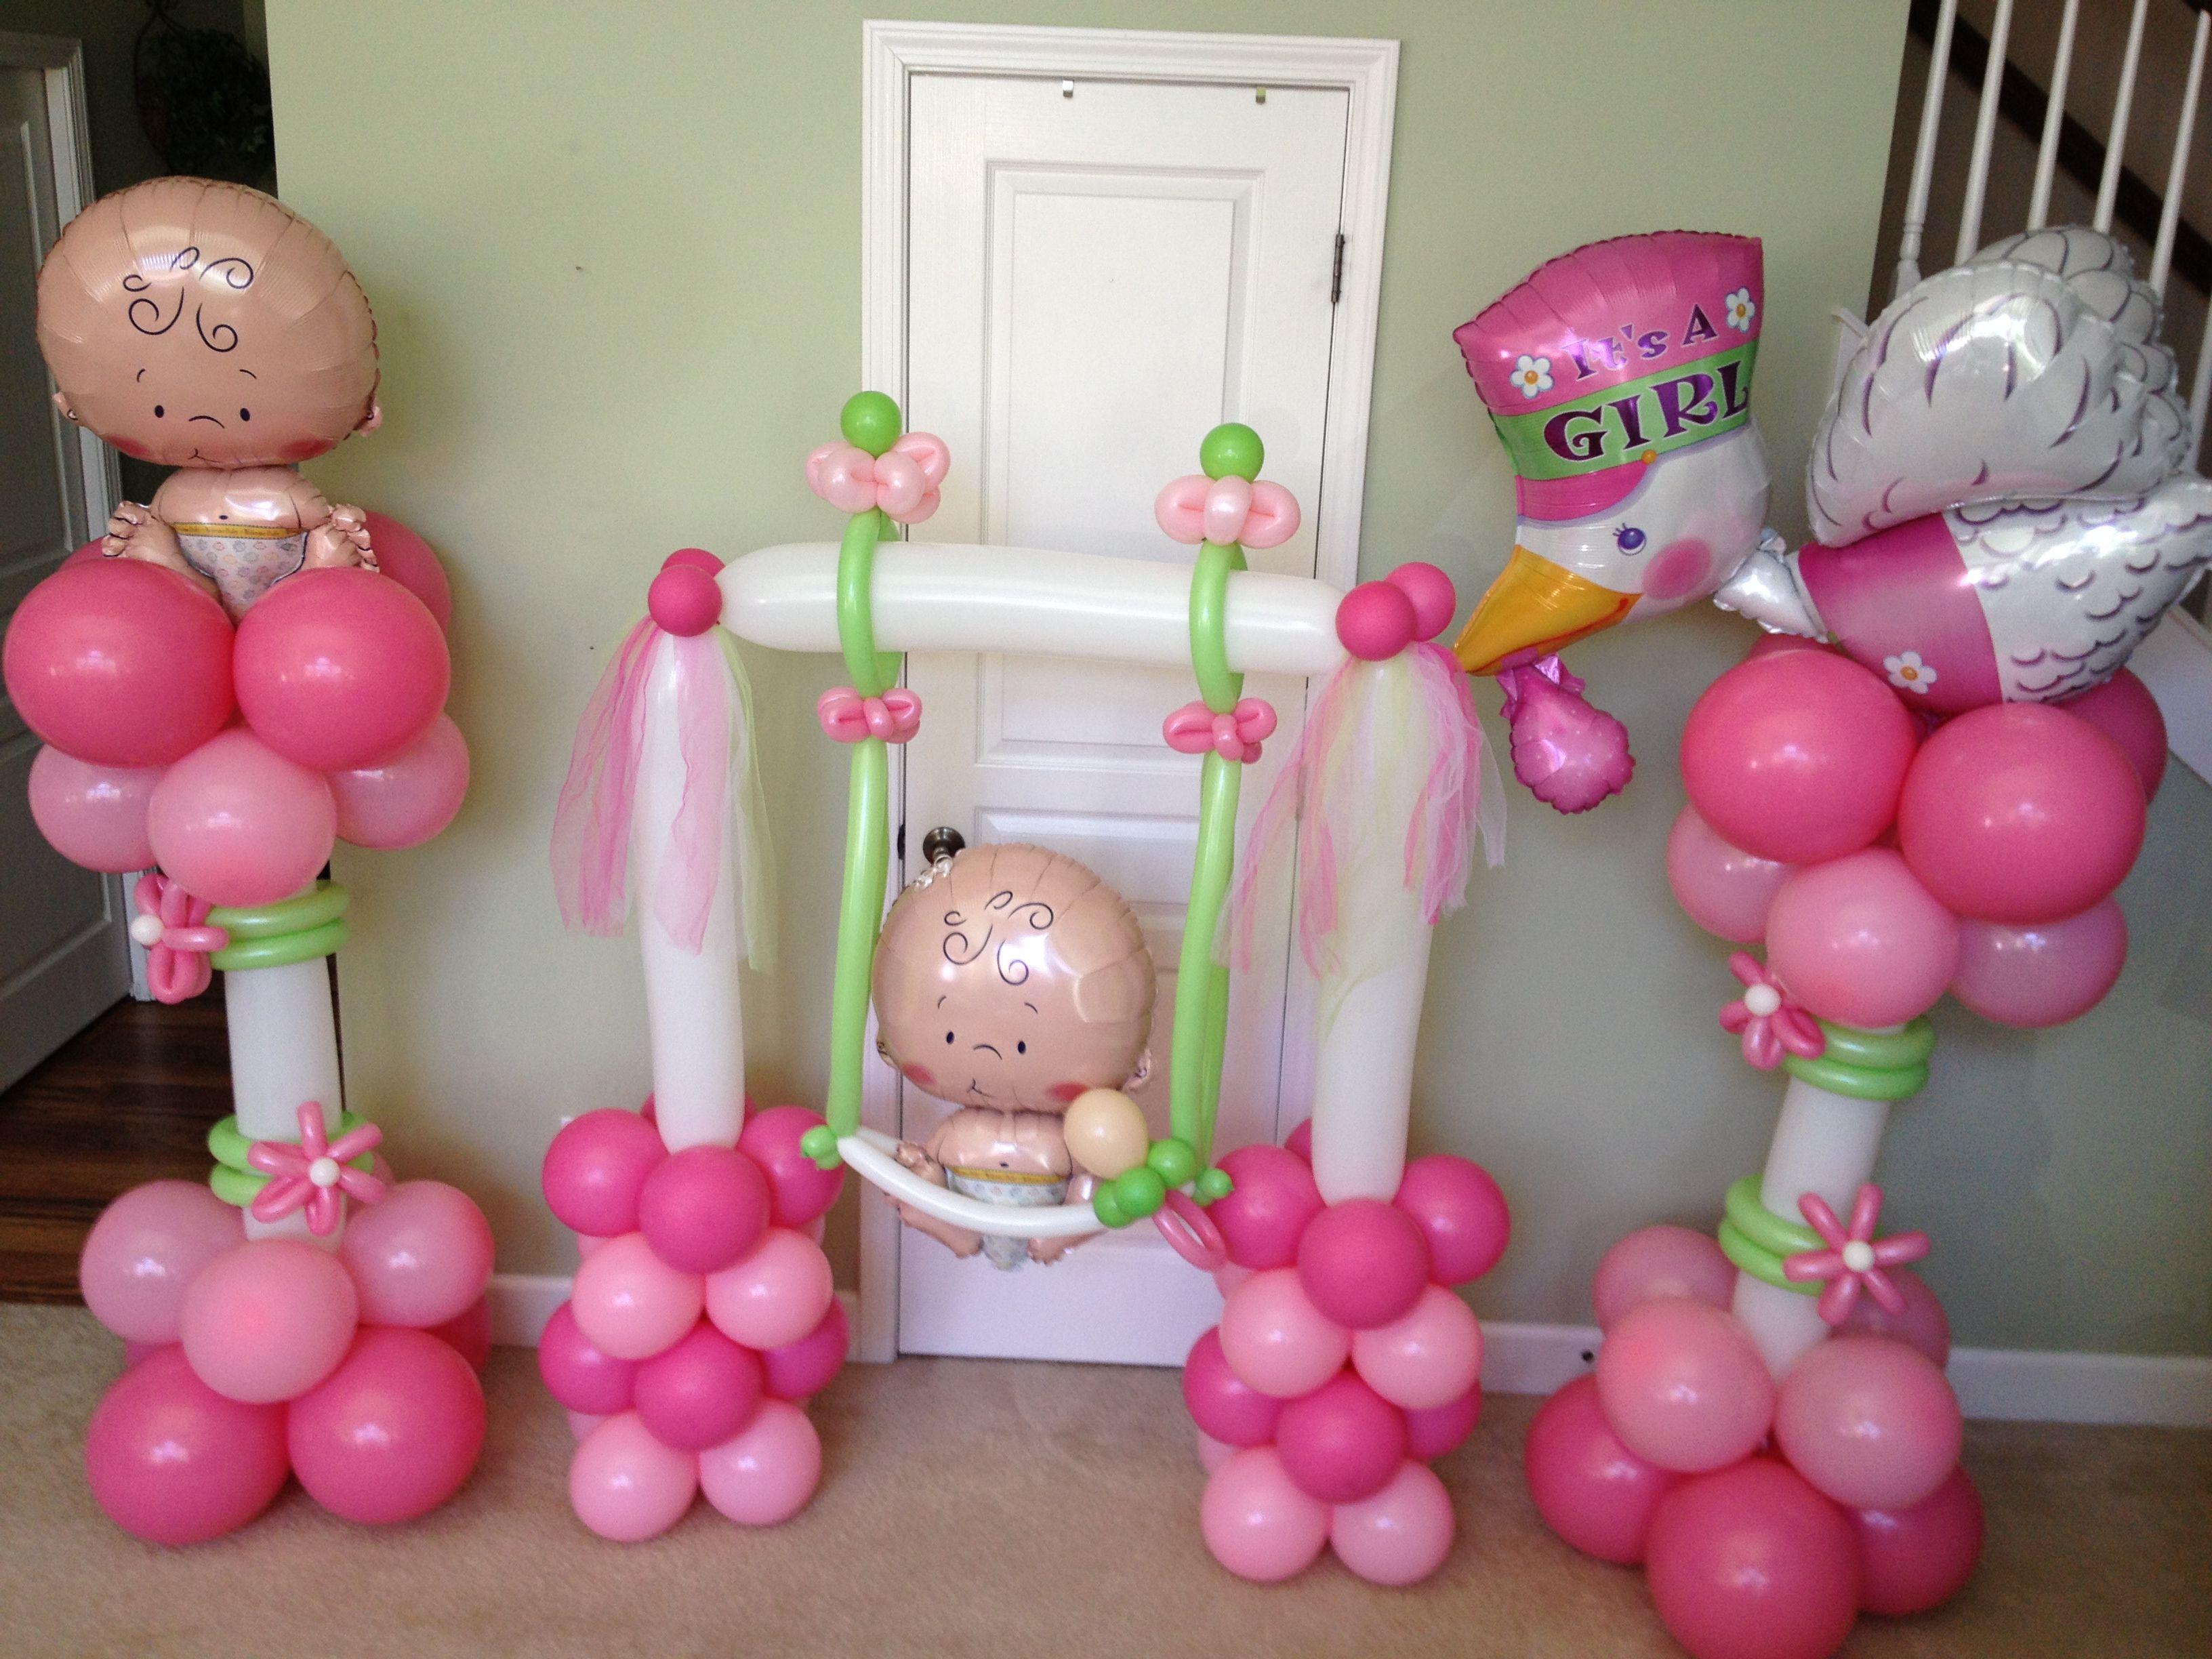 Baby girl balloon decorations baby shower balloons for Baby shower decoration ideas with balloons